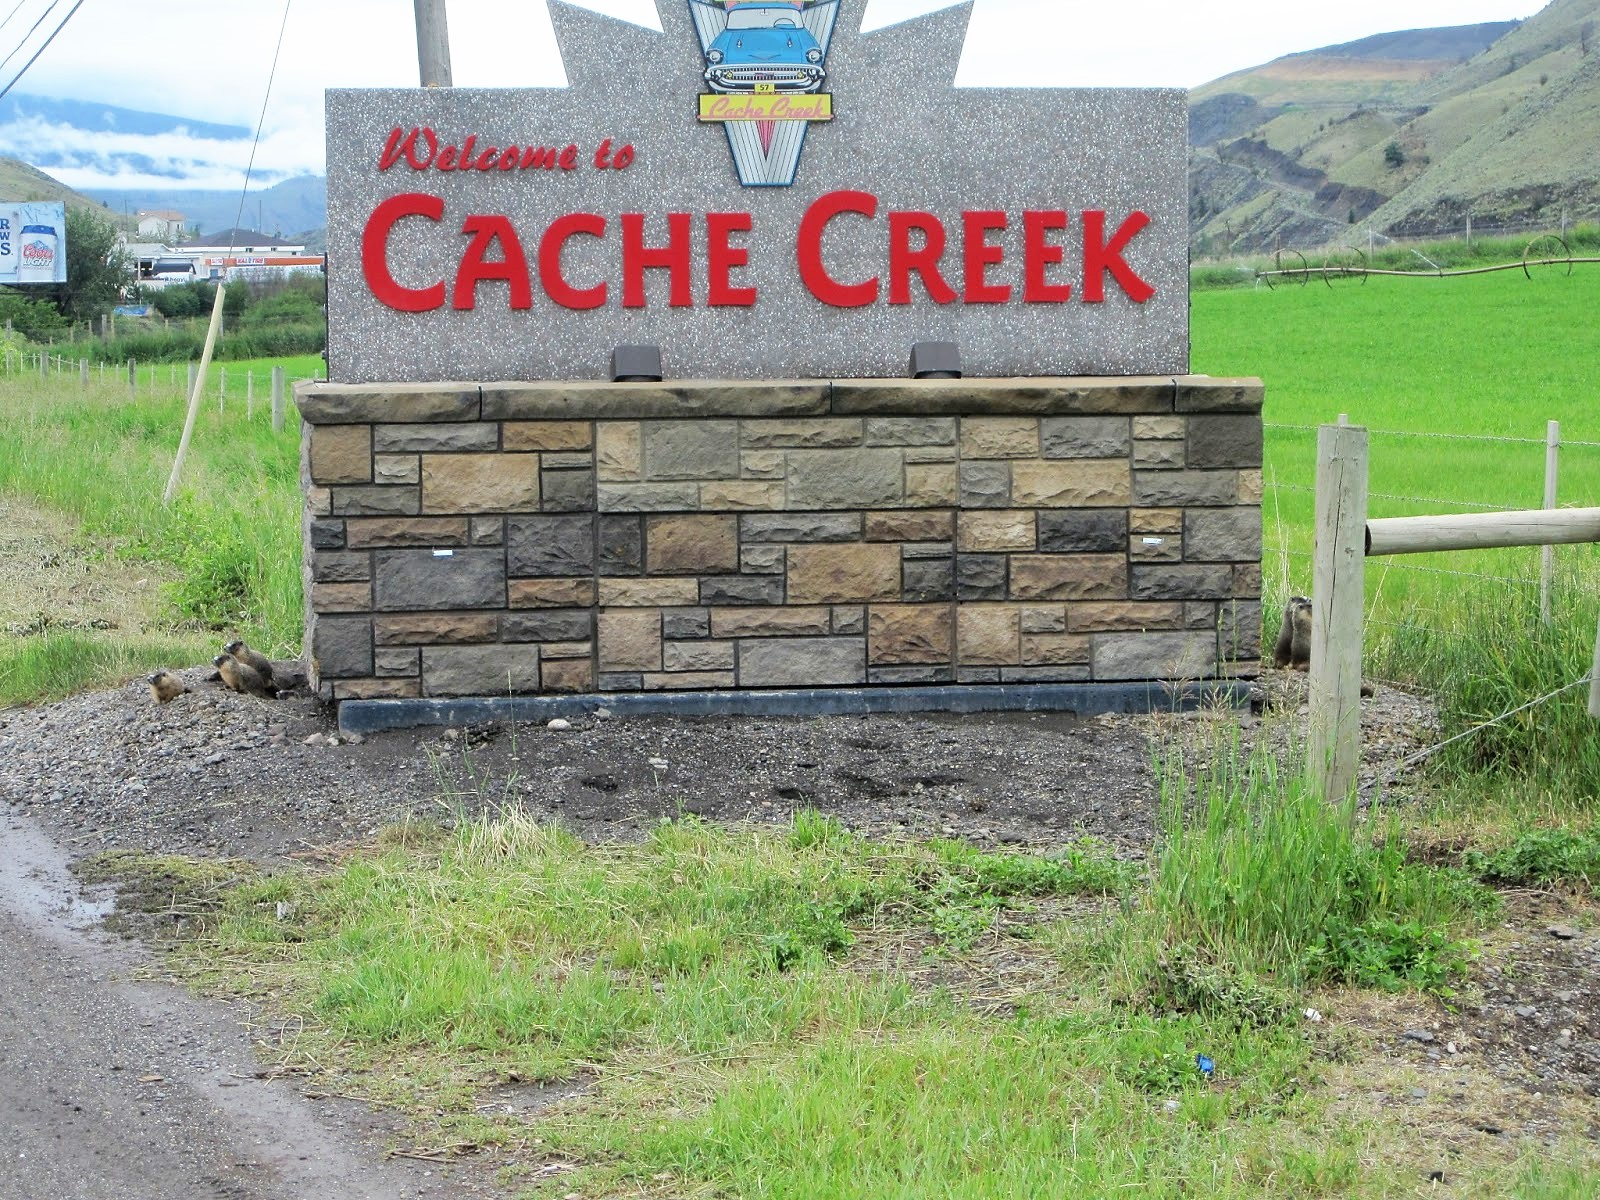 Weekend flooding situation mostly stable in Cache Creek